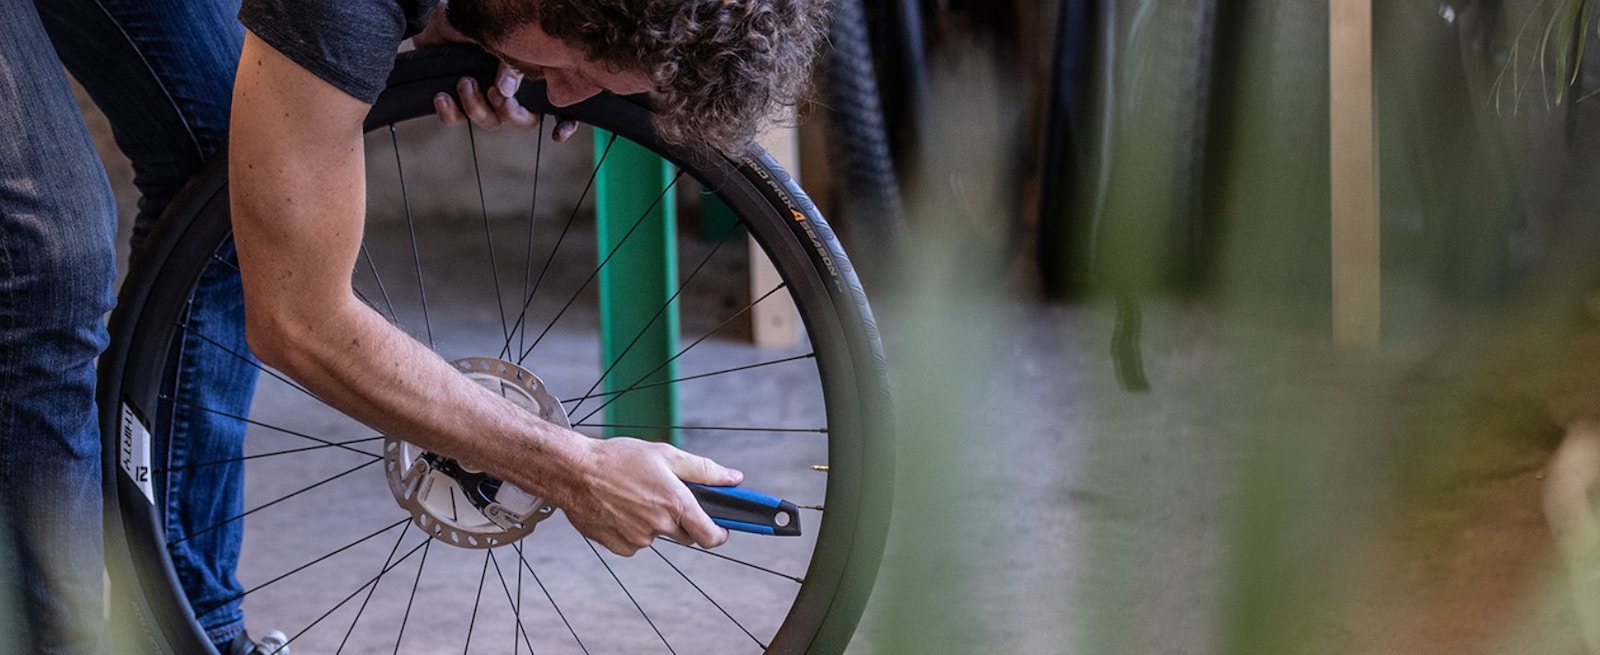 BBB - How to replace disc brakes?